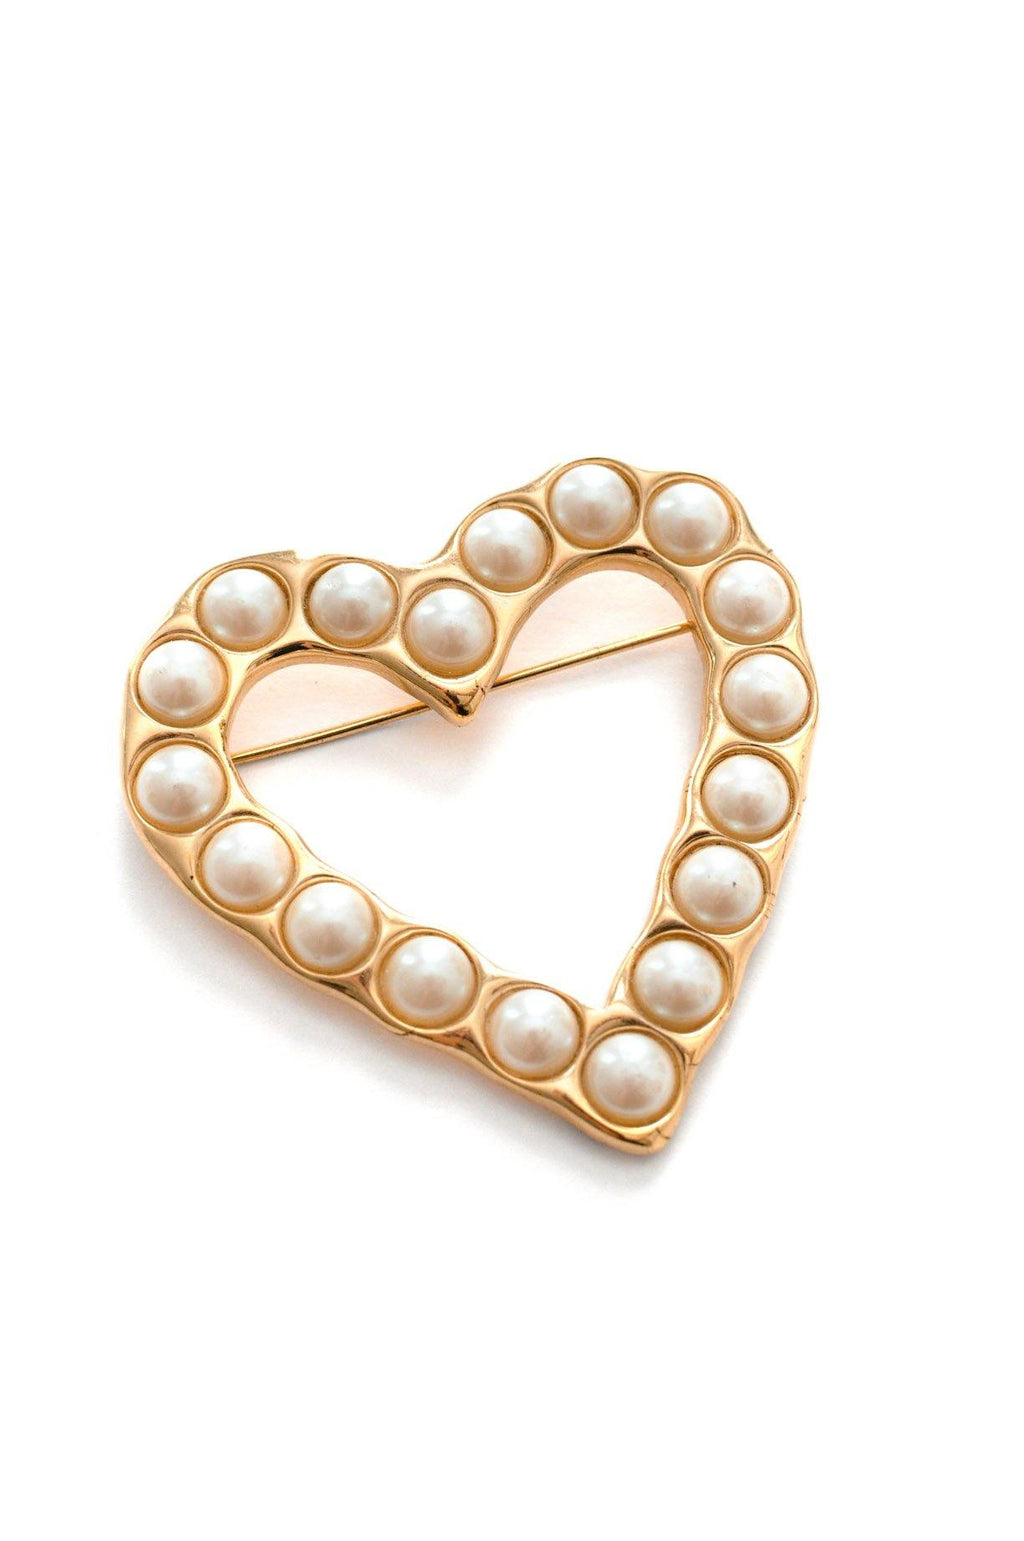 Givenchy Pearl Heart Brooch